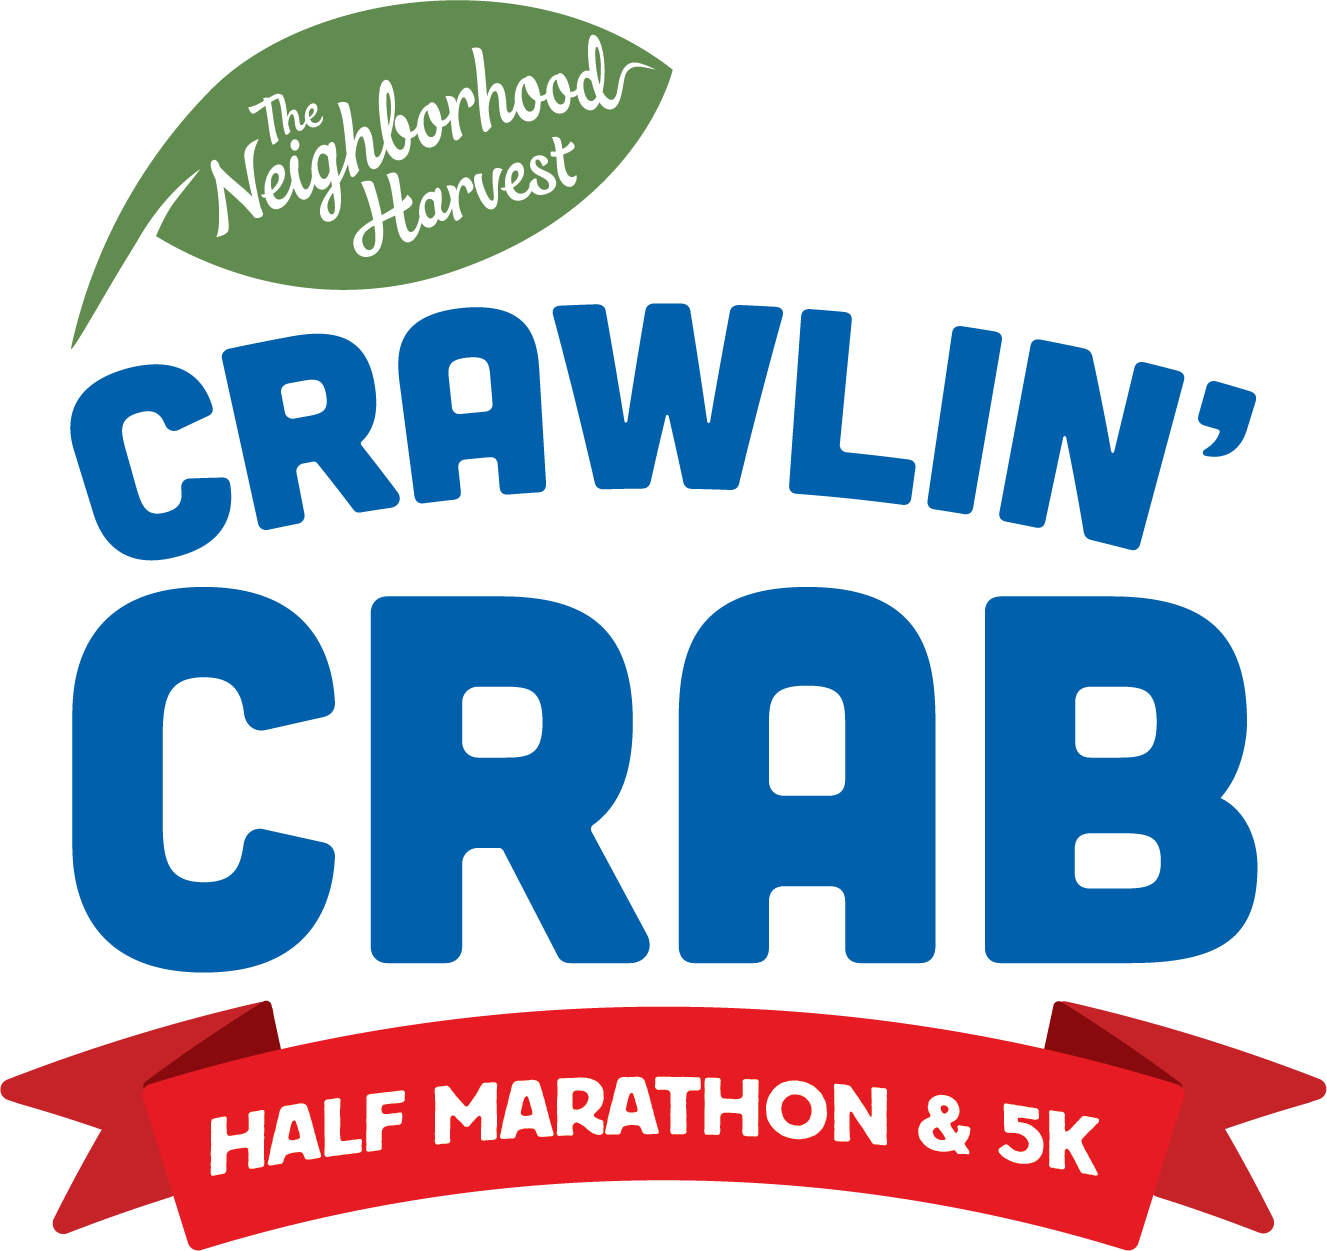 Run, Crawl, Shellebrate! Logo